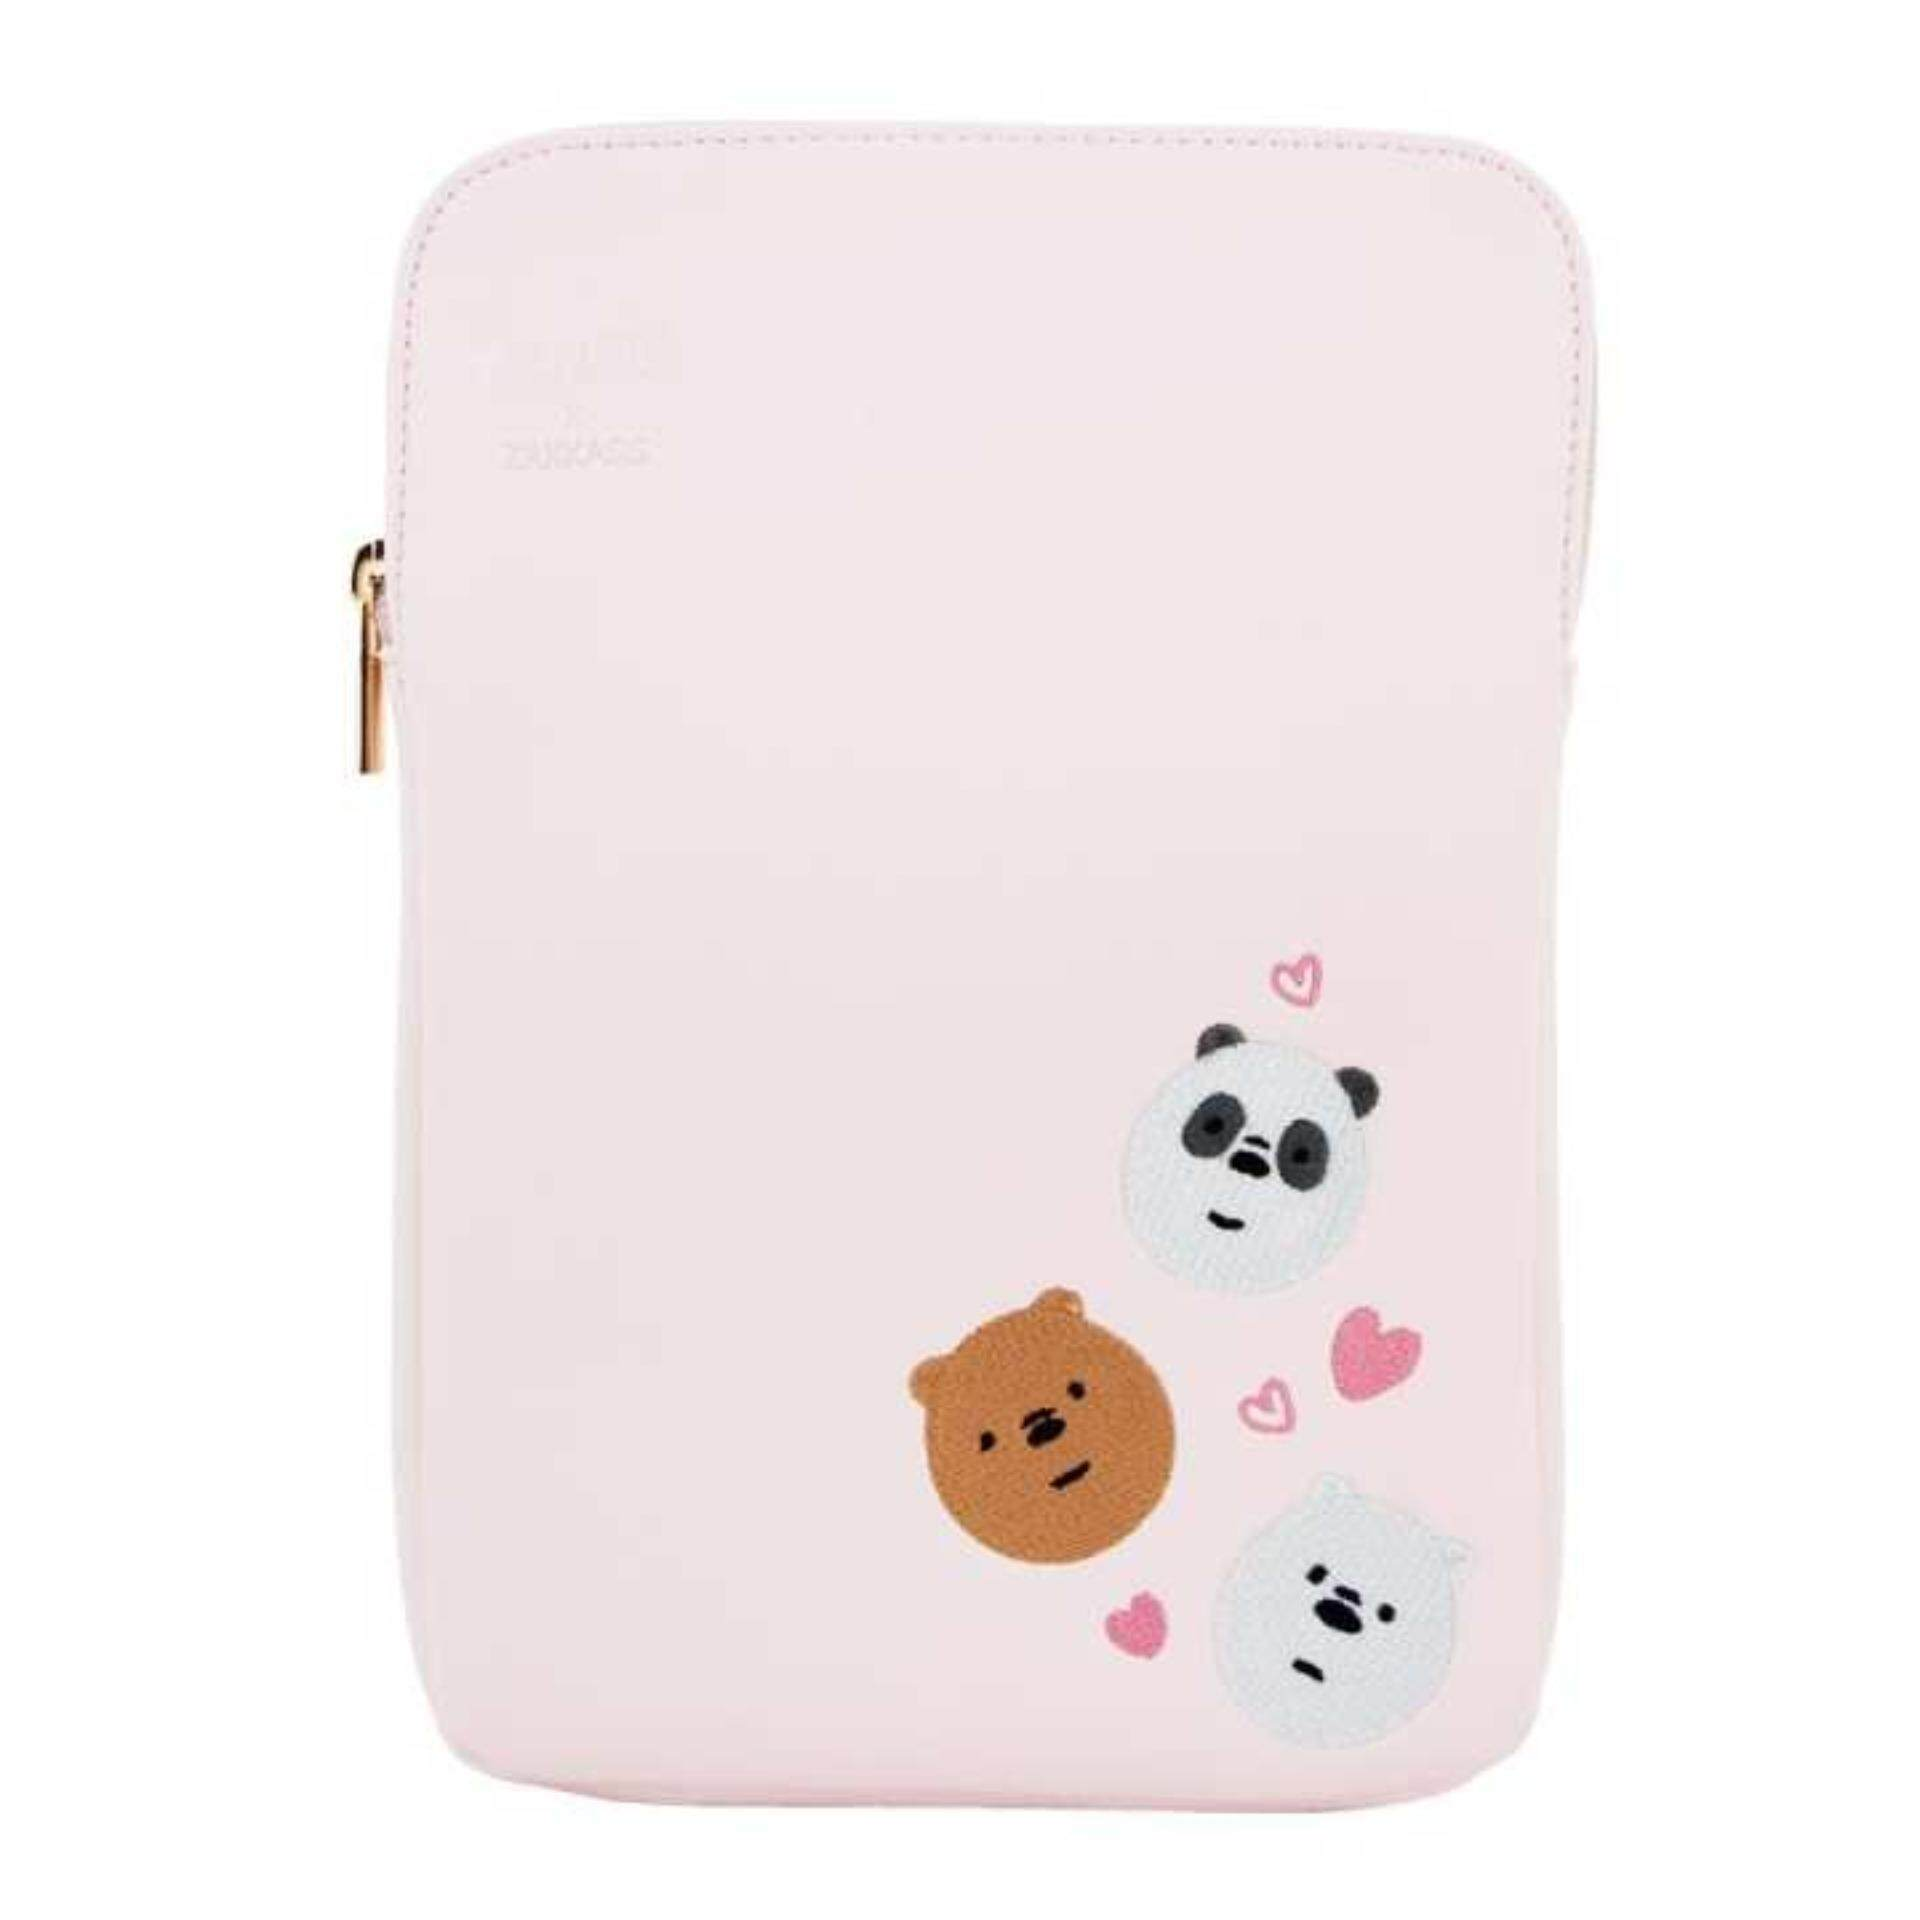 We Bare Bears 10 Inches Tablet Bag - Sakura Colour